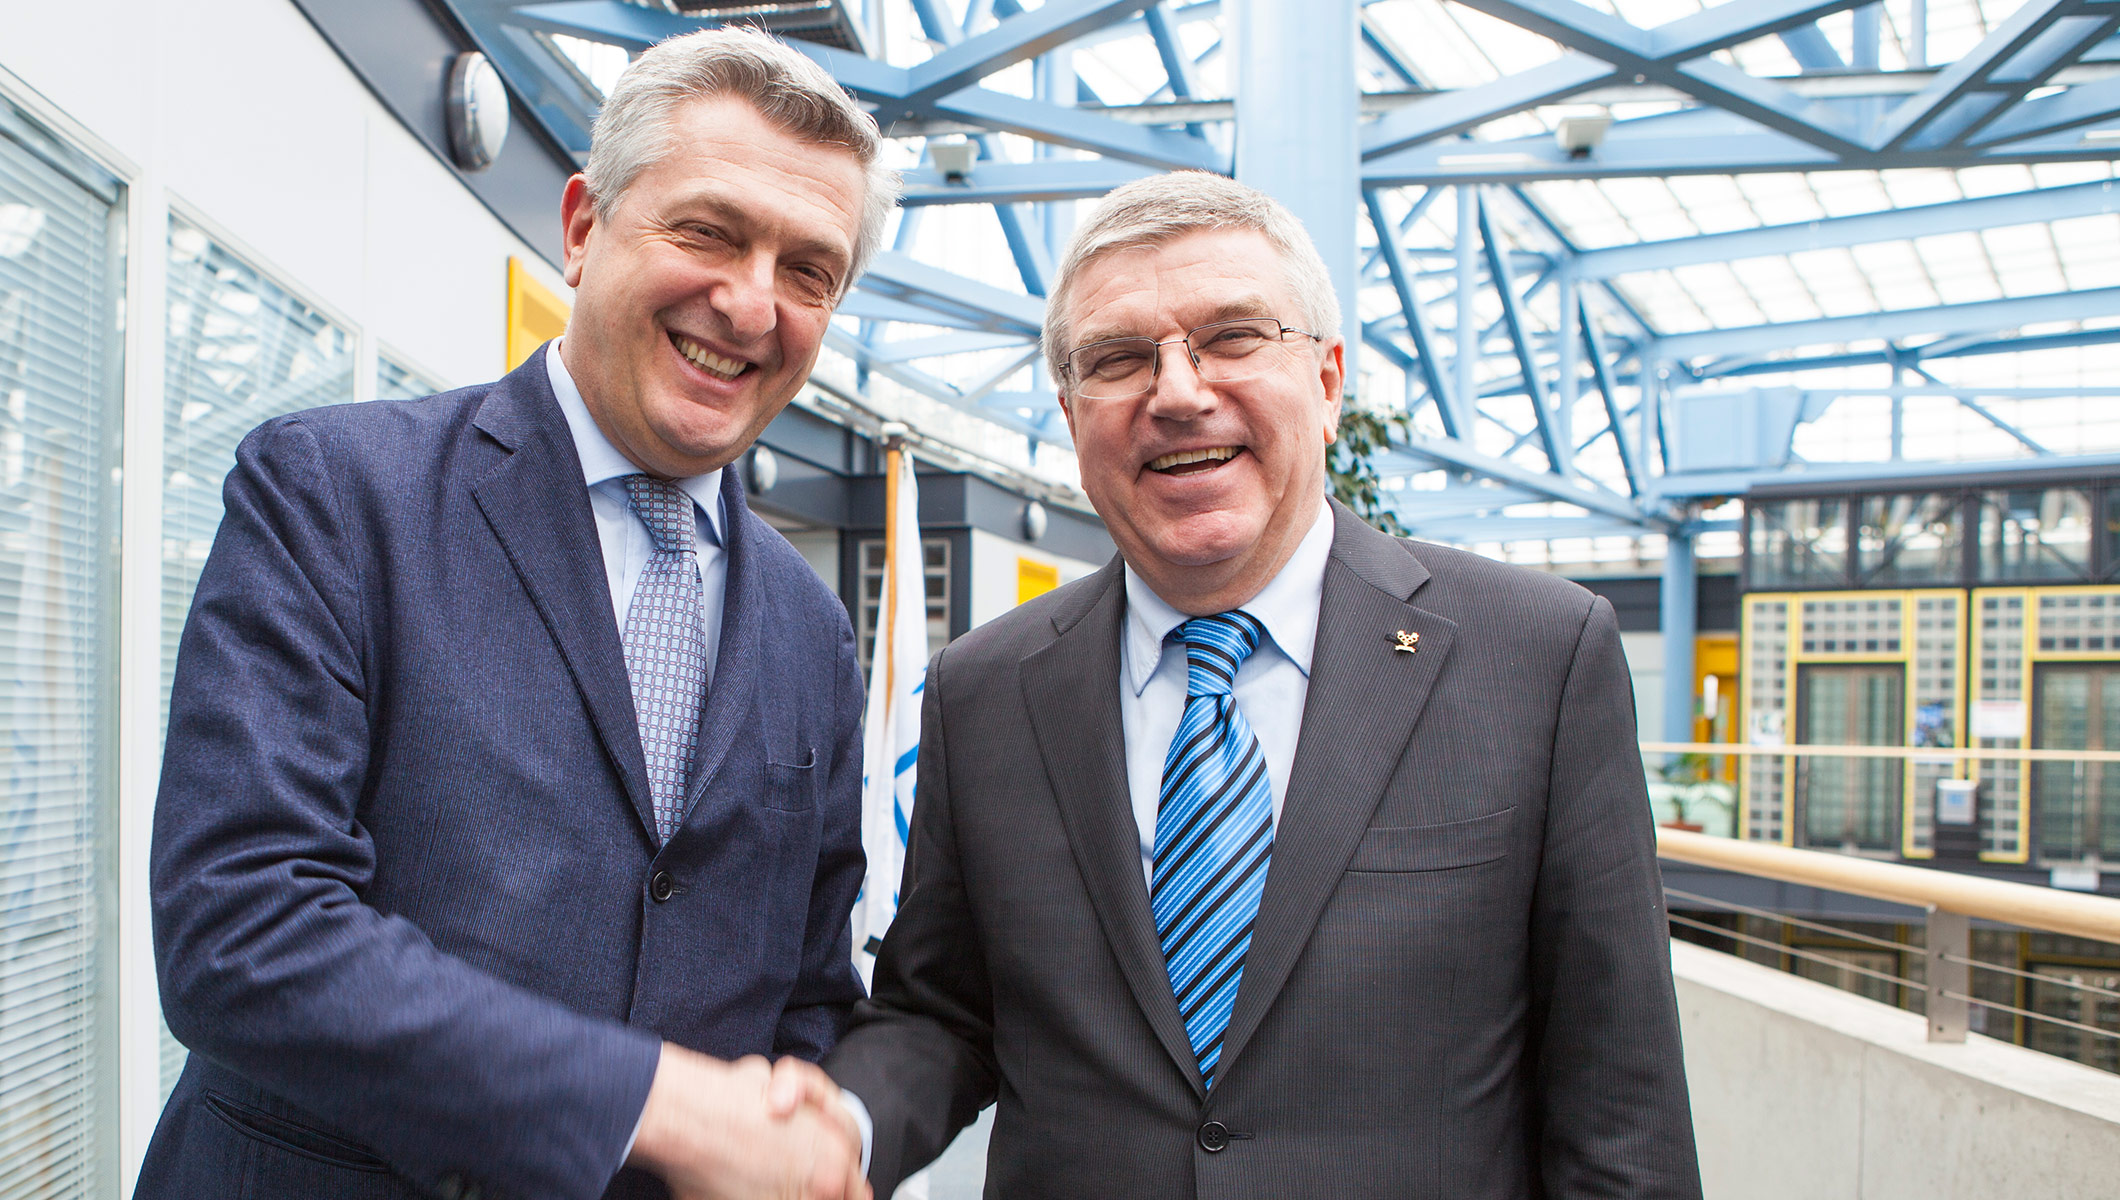 UN High Commissioner for Refugees Filippo Grandi meets with International Olympic Comittee President Thomas Bach